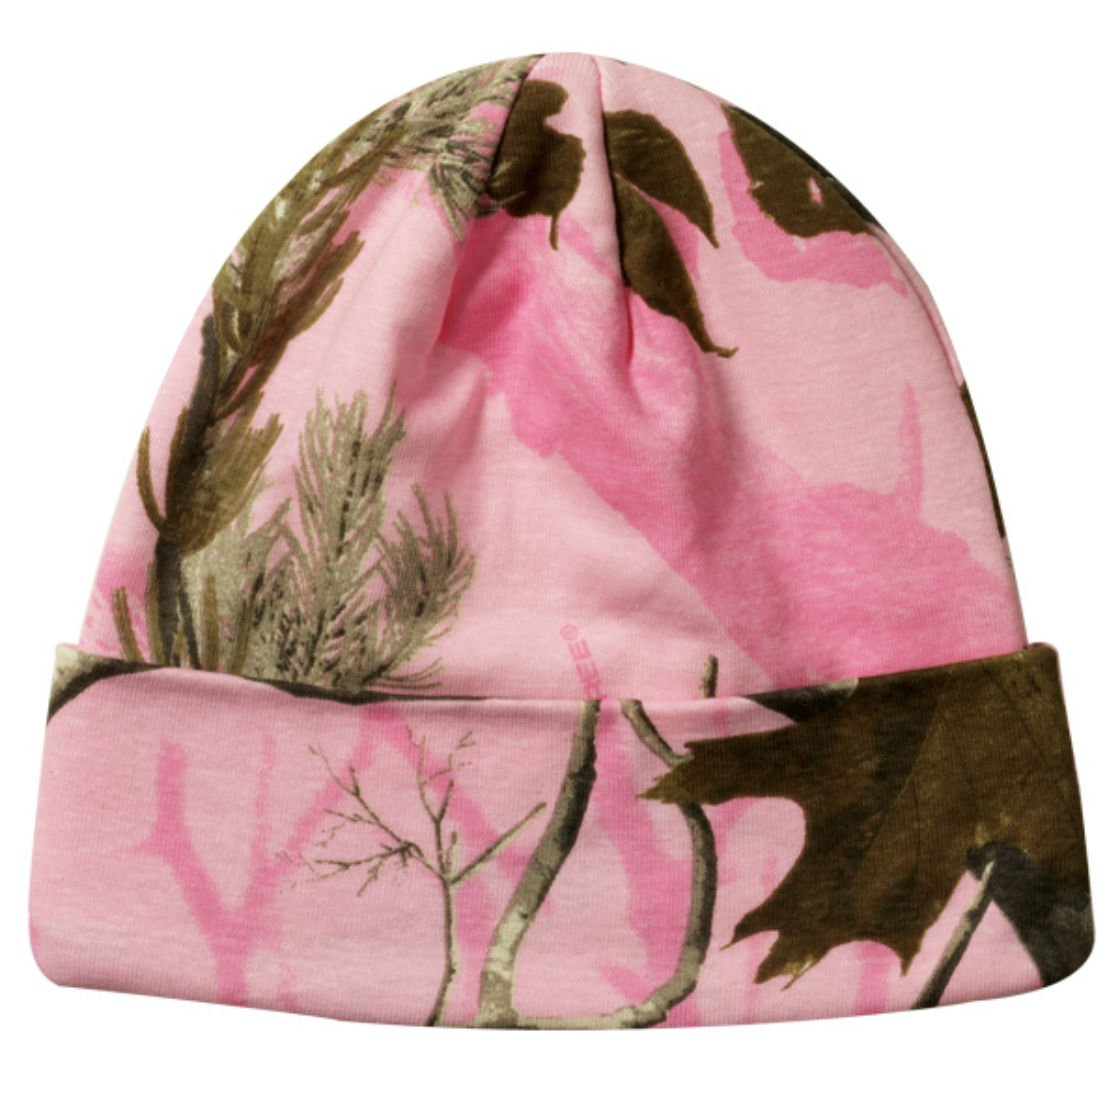 Realtree Licensed Camo Knit Cuff Beanie Pink by Realtree